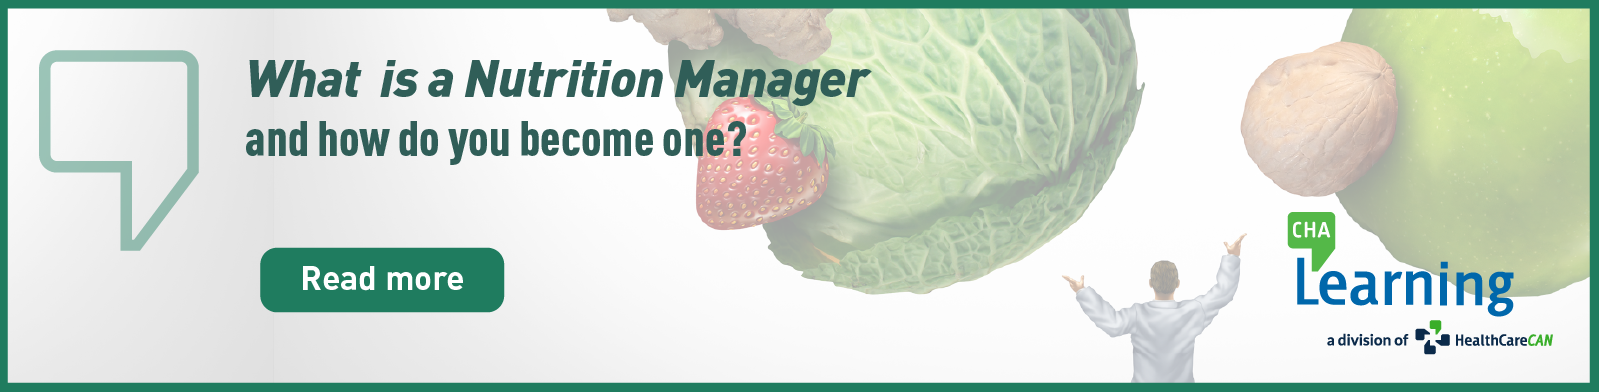 What is a Nutrition Manager and how do you become one?